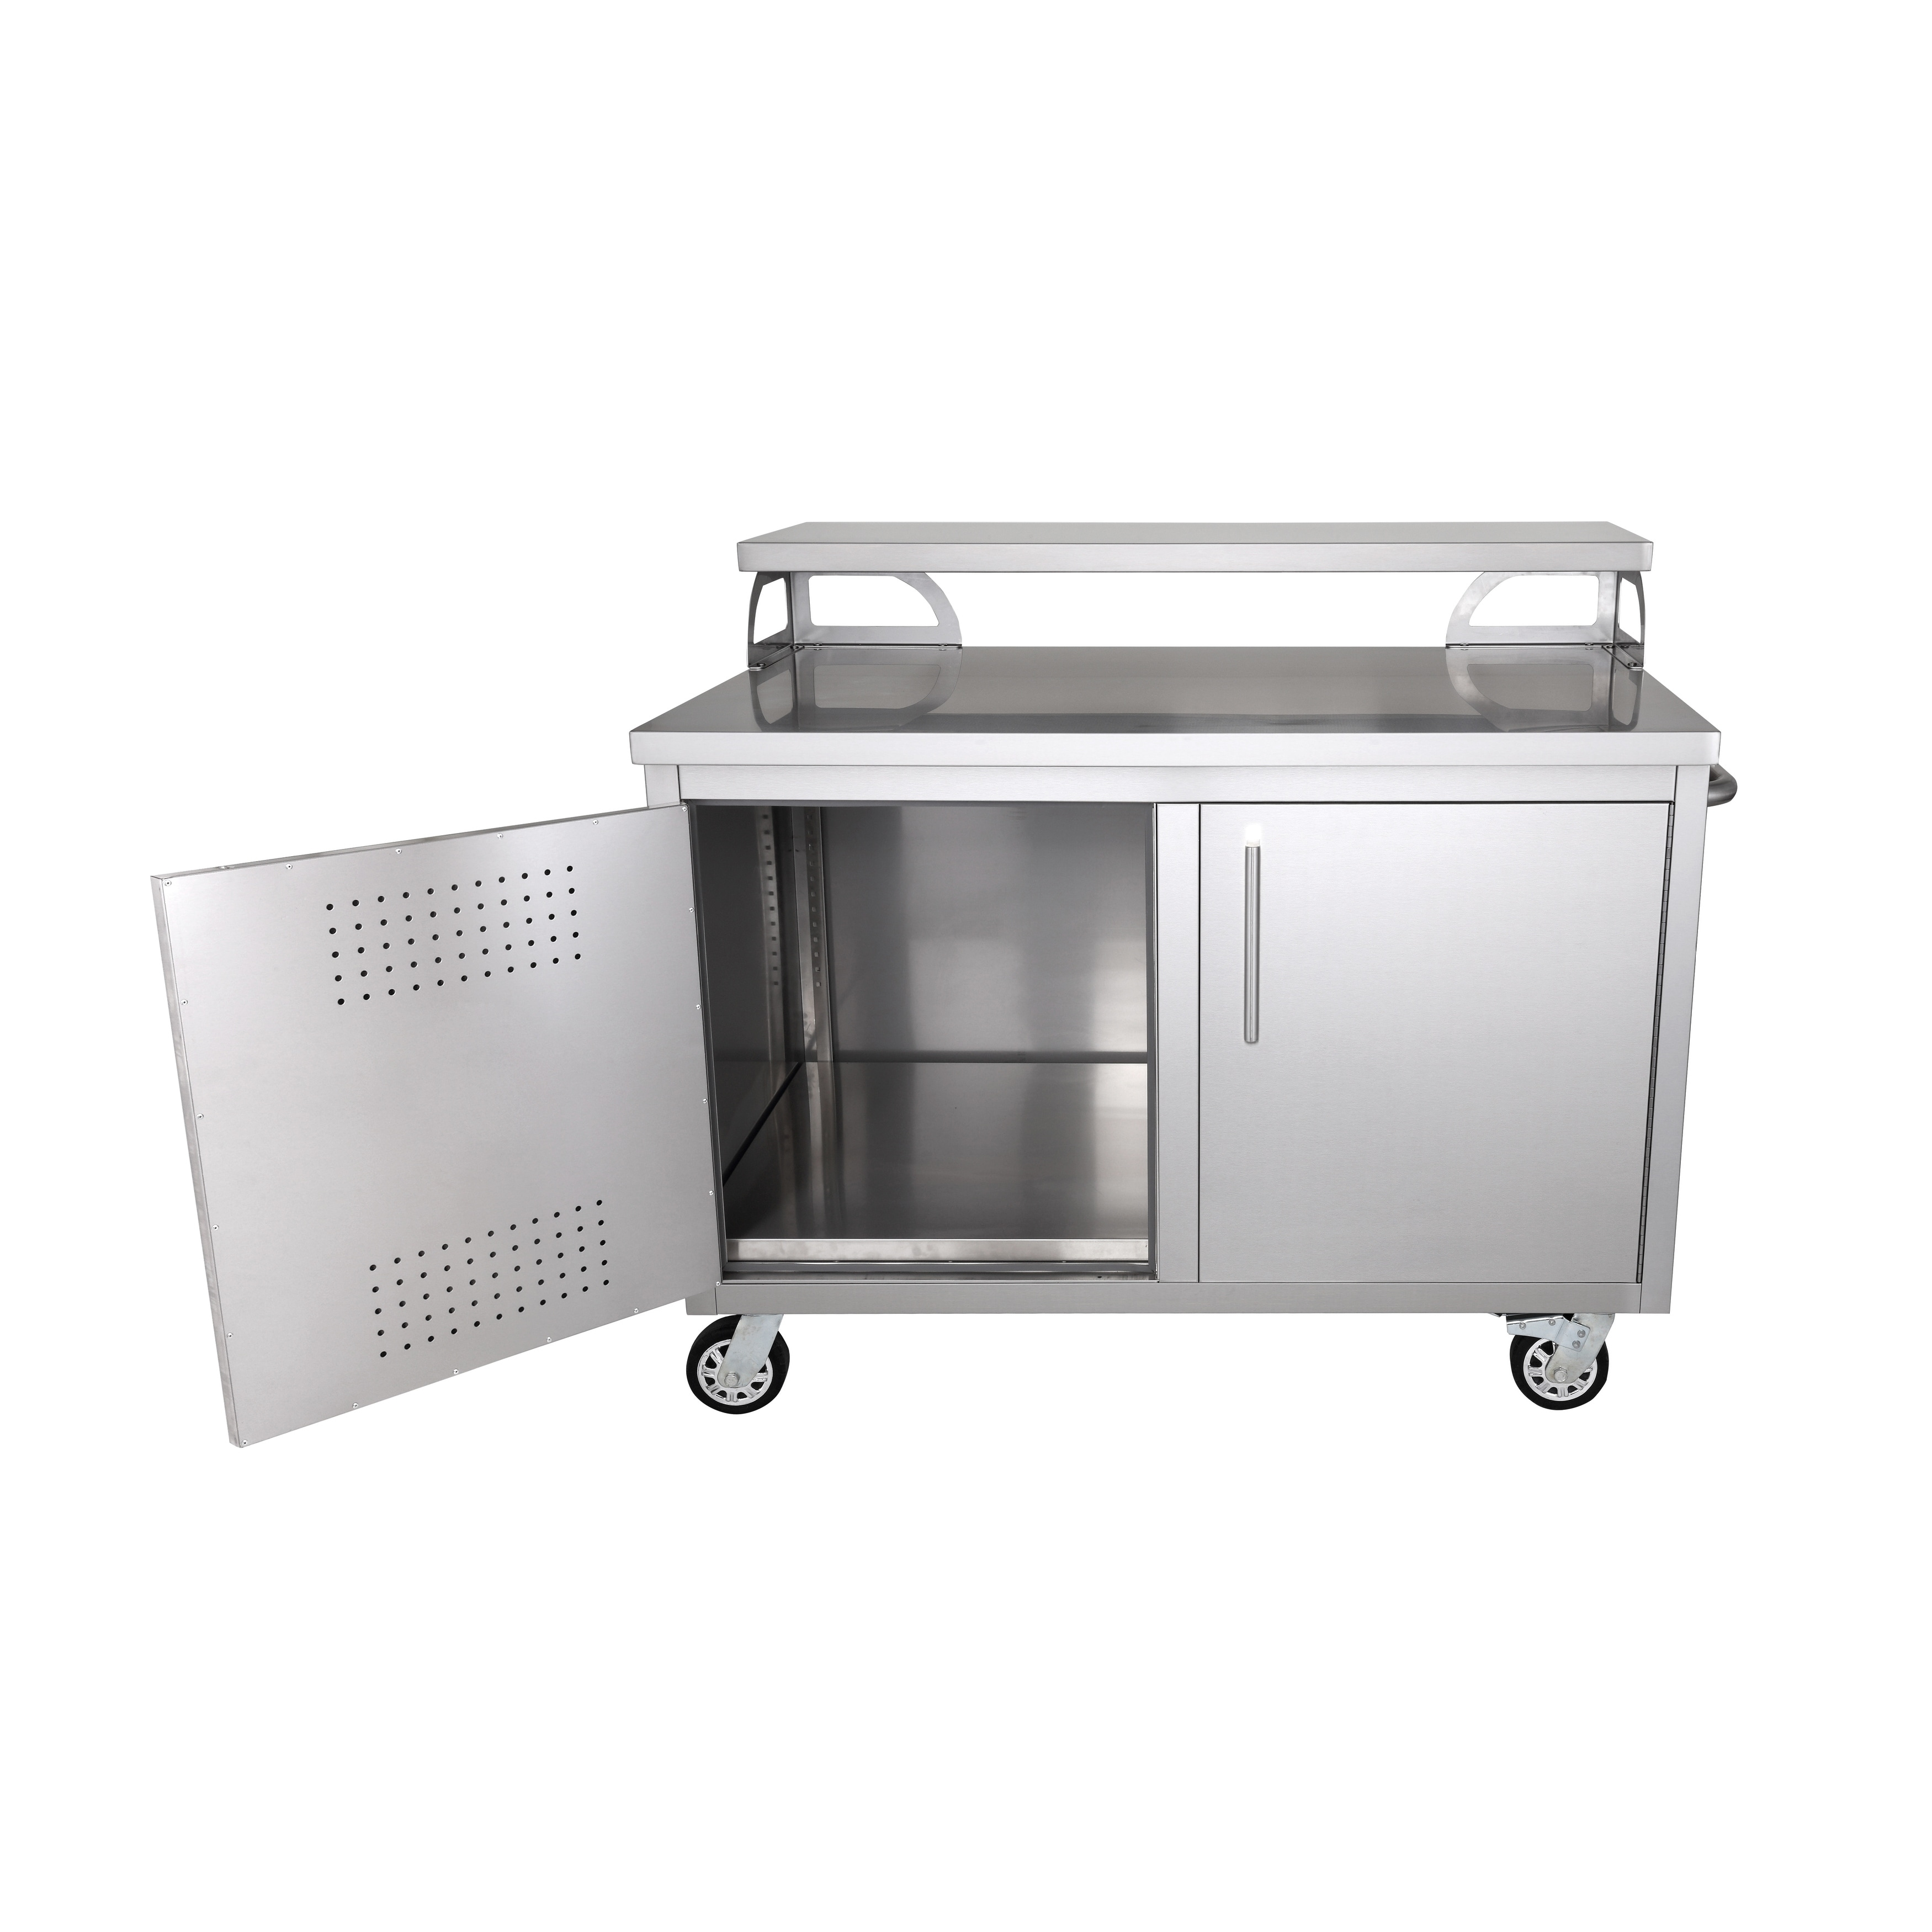 Shop Portable Stainless Steel Outdoor Kitchen Cabinet Patio Bar - Portable Outdoor Kitchen